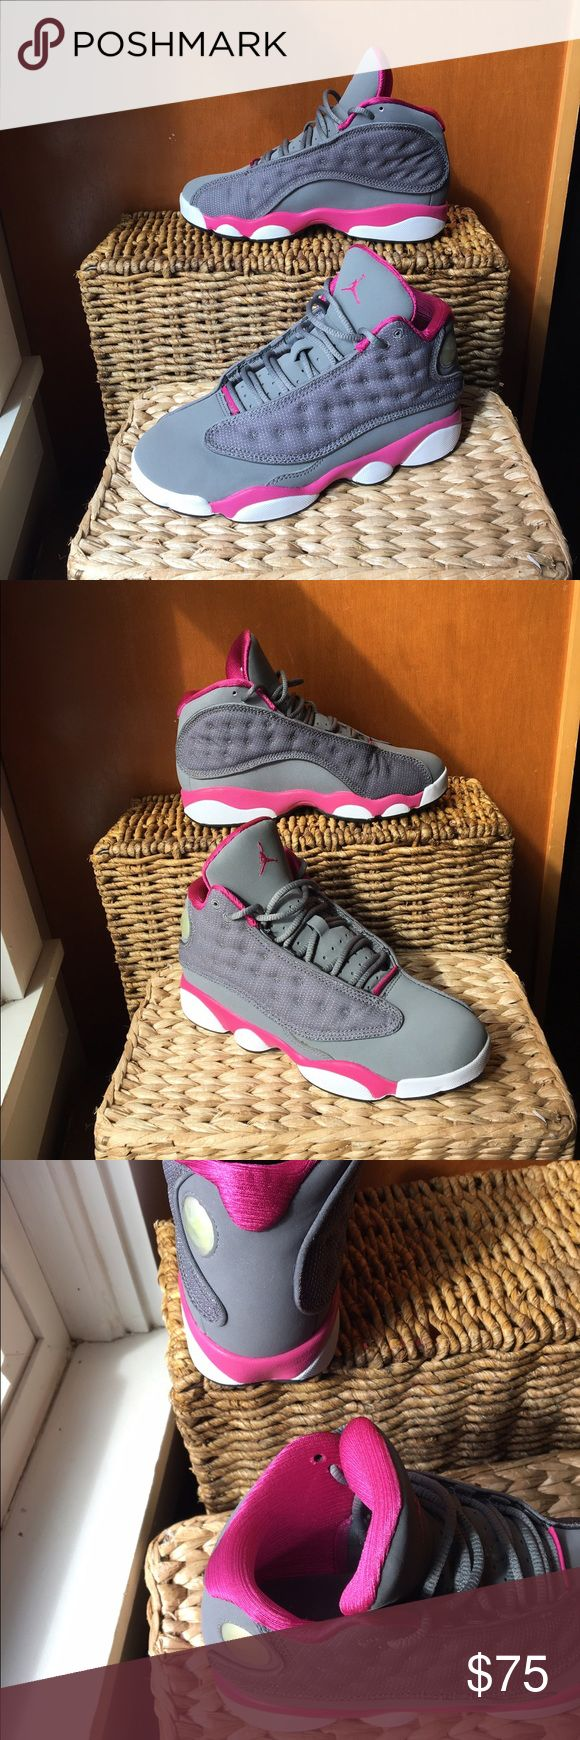 Air Jordan Retro 13 Grey/Pink size 3Y Nike Air Jordan 13  Retro COOL GREY/FUSION PINK-WHITE #439669-029 kids size 3Y. These are in like new condition clean inside and out, comes with box. Retailing around 100.00 sold out on multiple websites.made in 2012.  This feminine approach for the Air Jordan 13 exclusively for girls features a Cool Grey upper with Fusion Pink accents Nike Shoes Sneakers